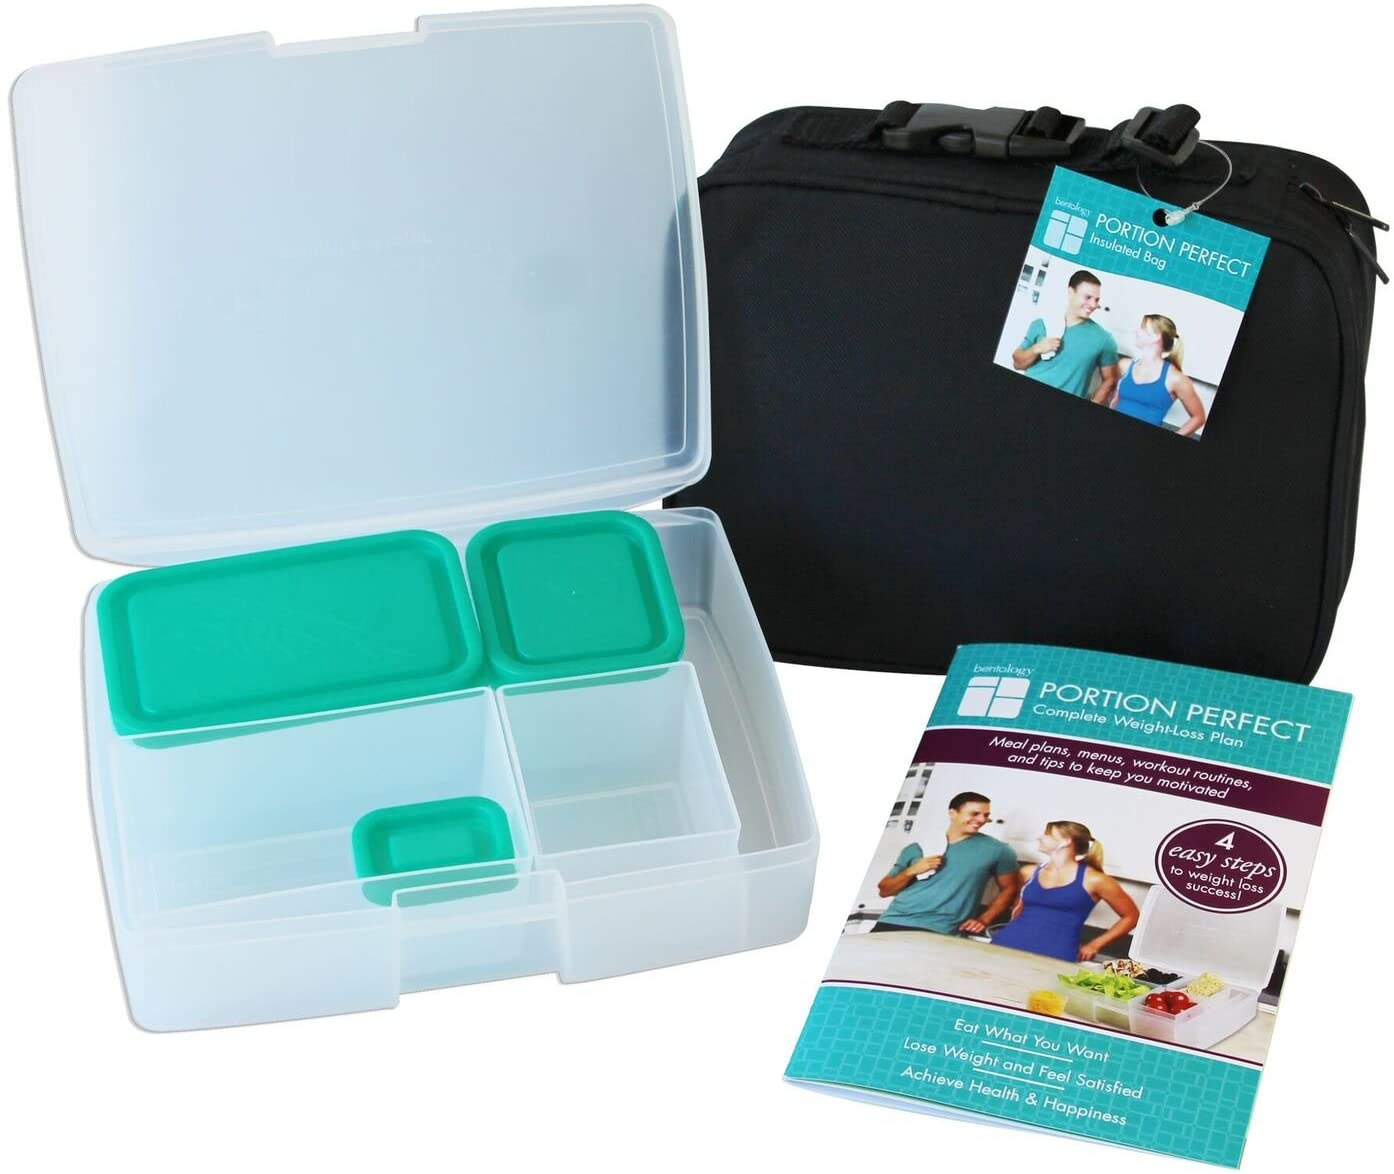 Bentology Lunch Bag with Bento Box - Includes Insulated Lunchbox Tote, 5 Portion Control Containers and Portion Control Guide